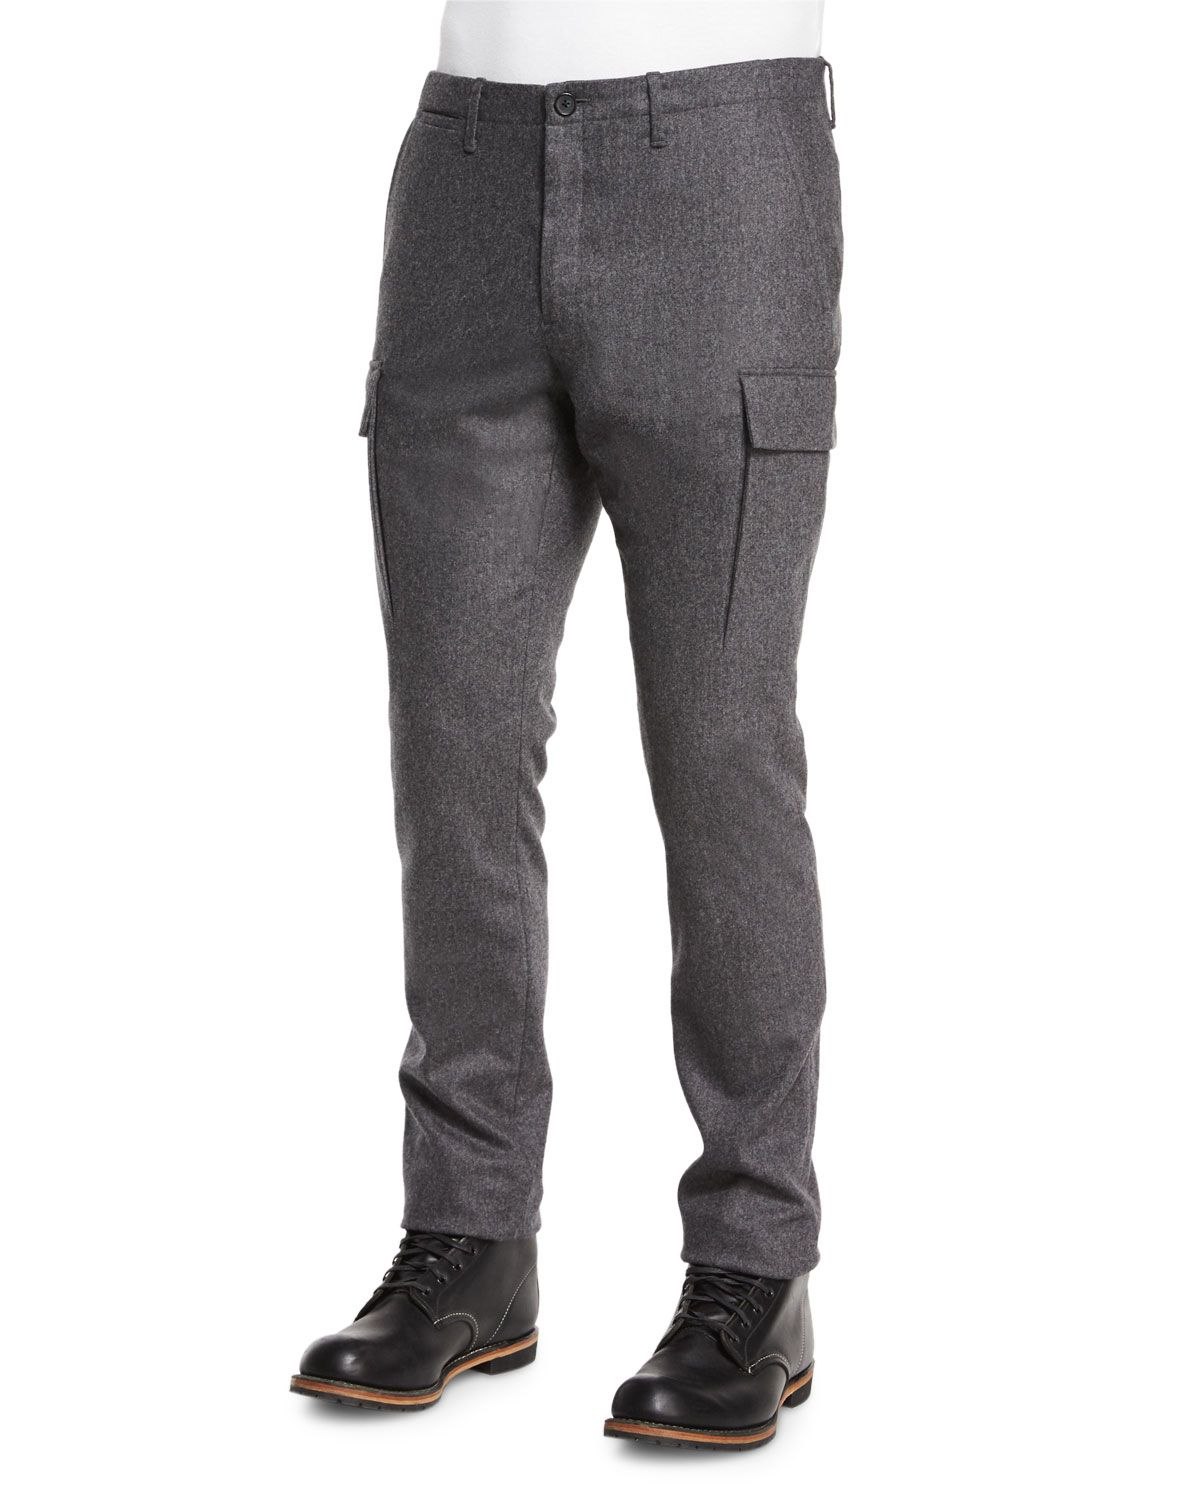 ef845d17b624 Buy michael kors pants grey   OFF58% Discounted